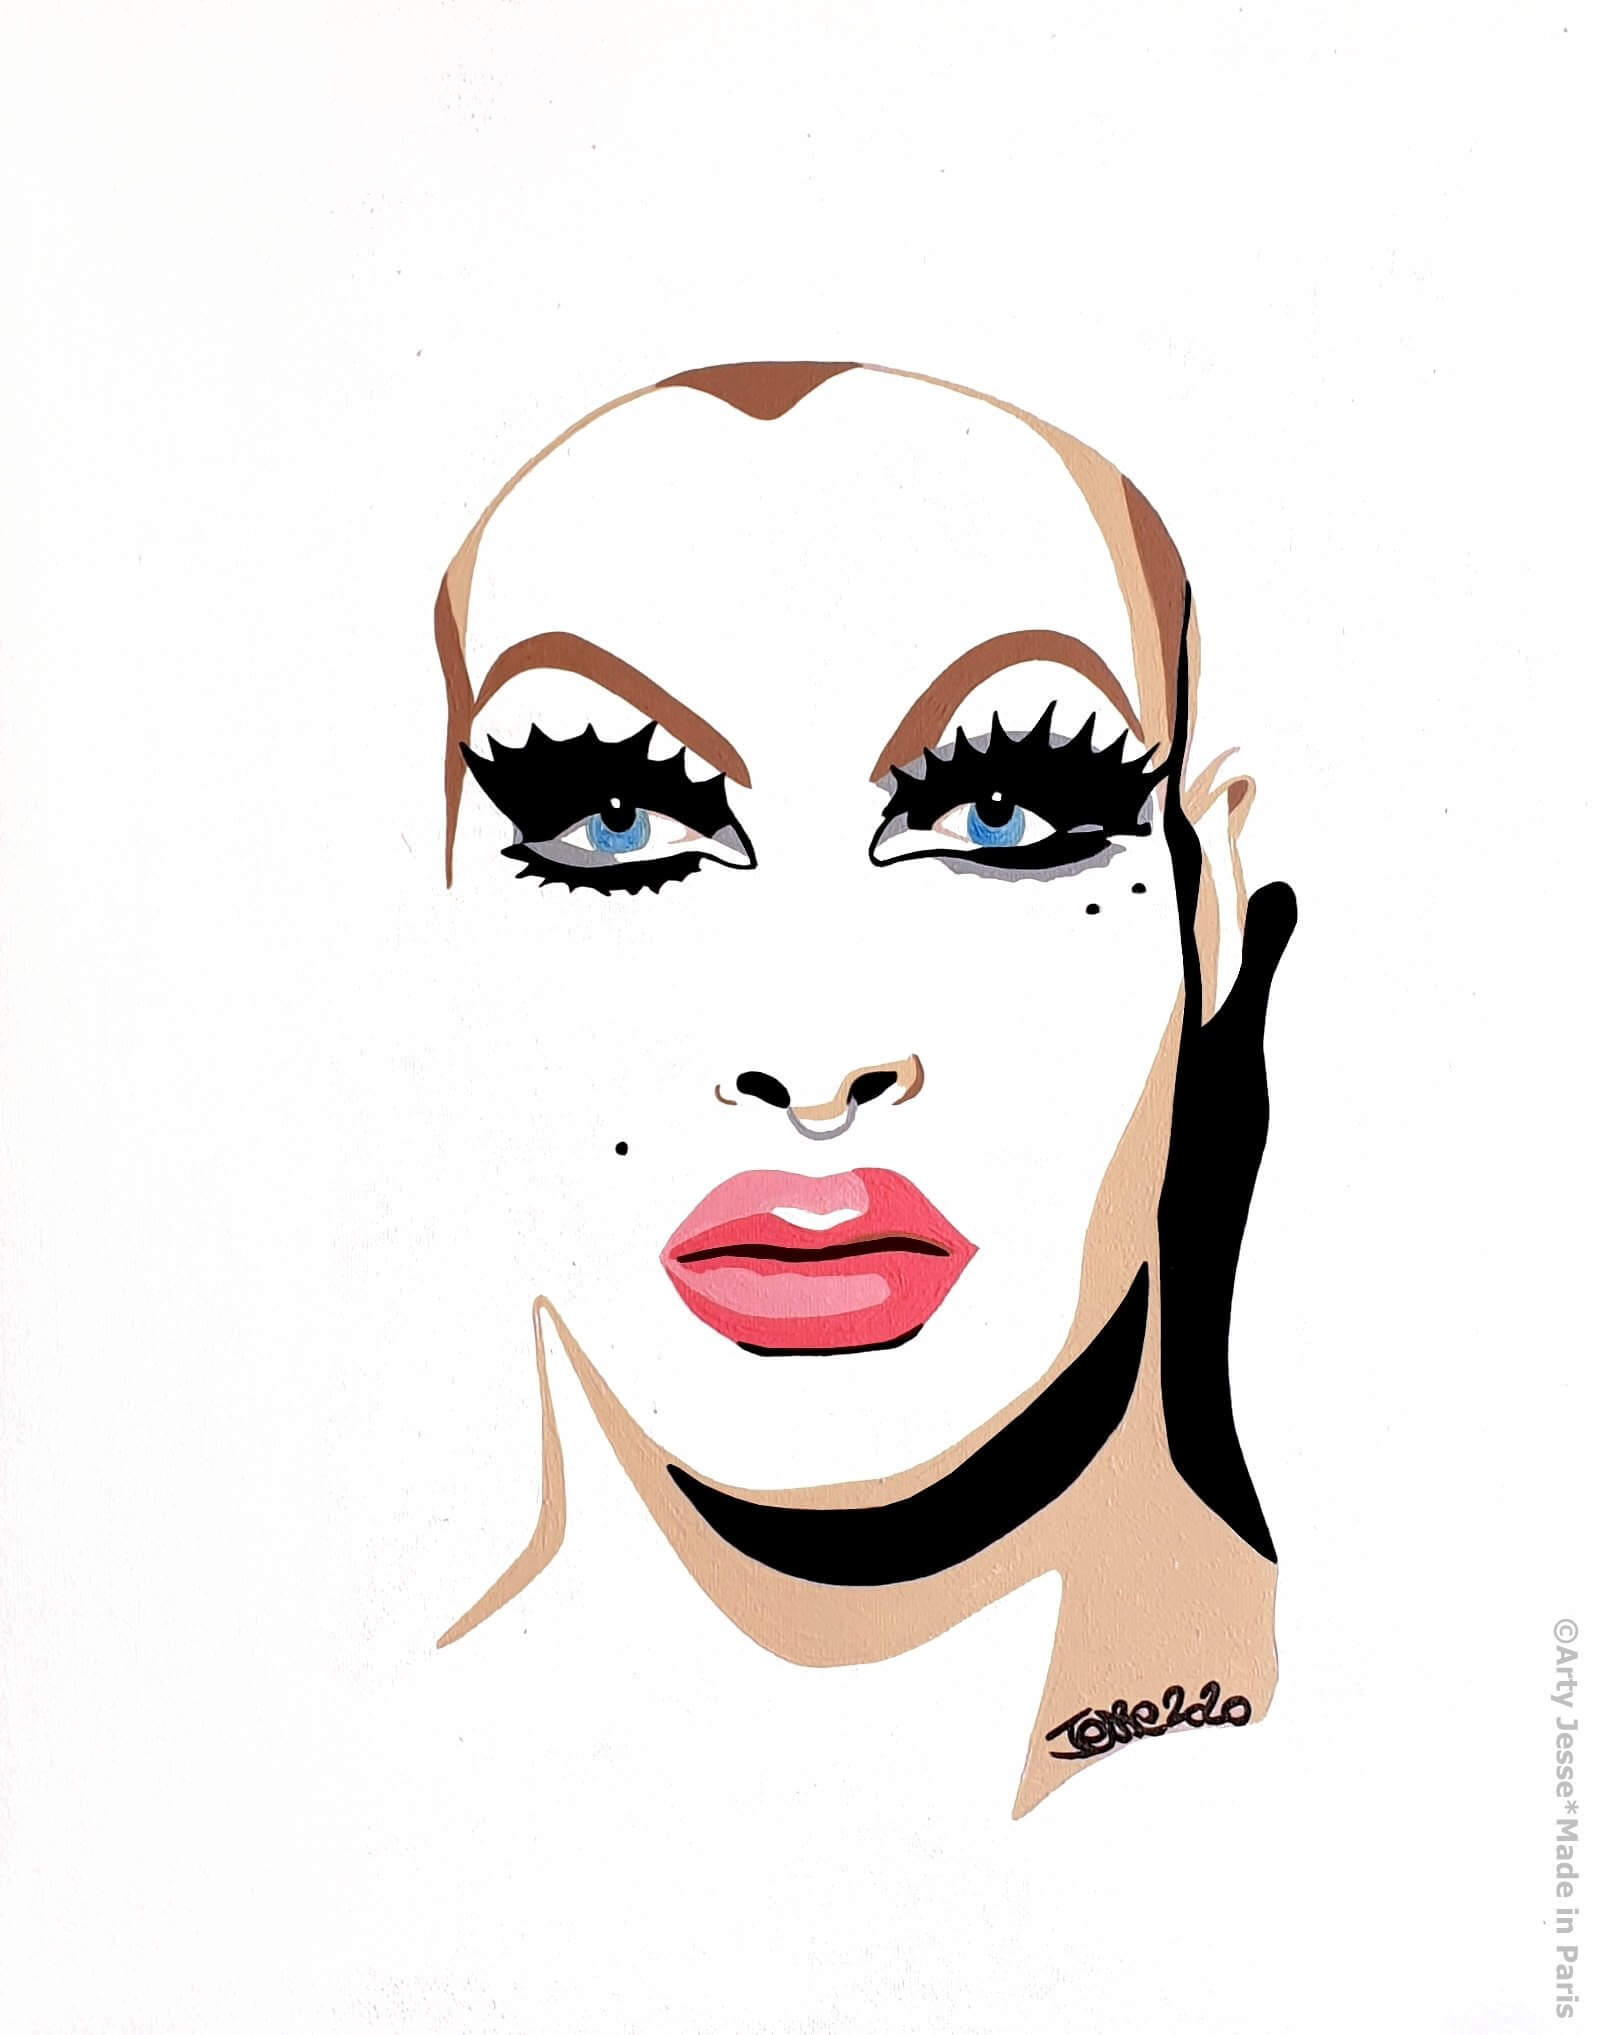 artiste peintre paris, circus art, drag queen, pearl liaison, drag art